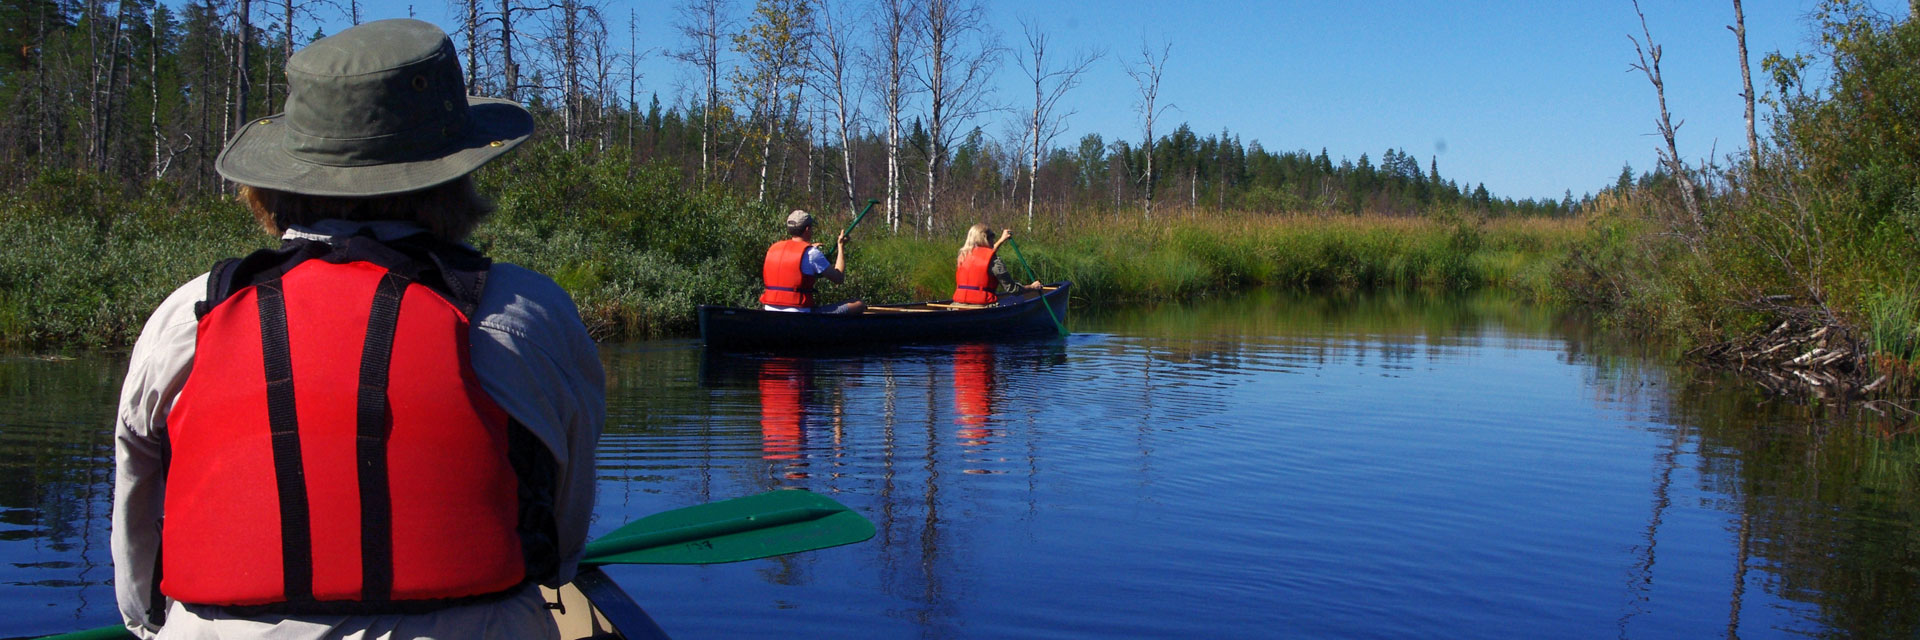 Canoeing on the Tar Route in Kainuu